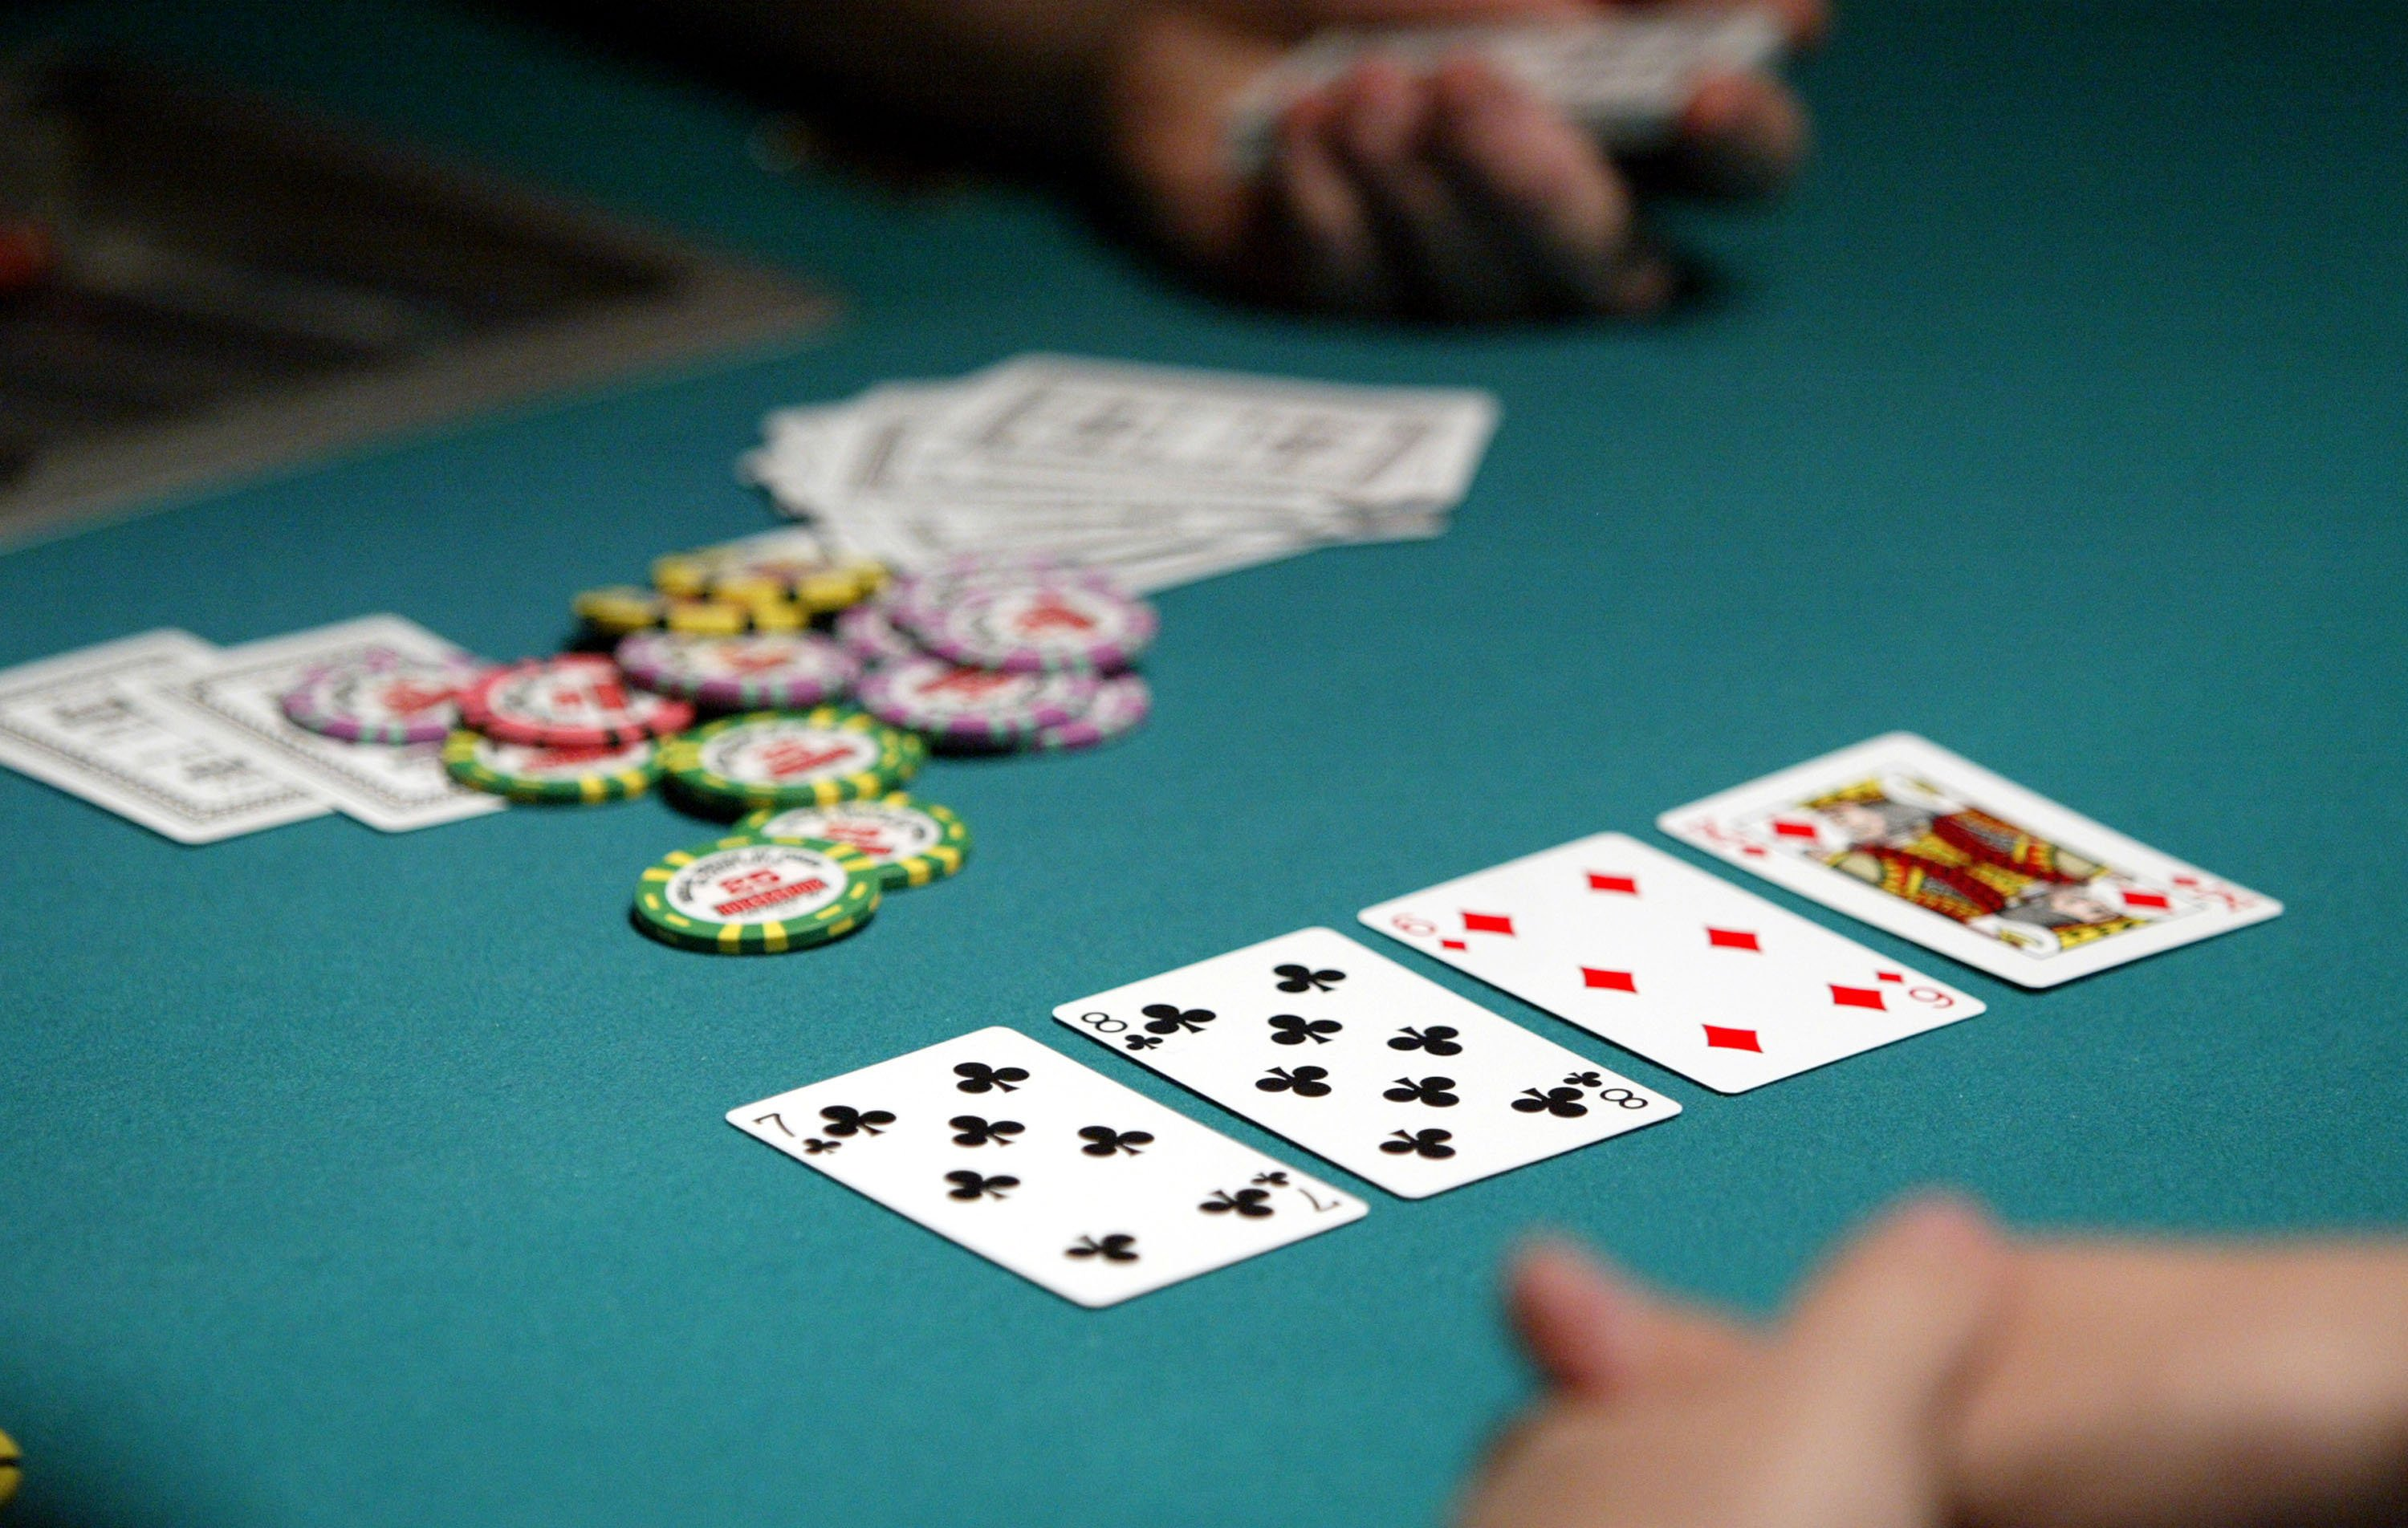 Online Gambling - The Soaring Rise From the Global Economic Crisis